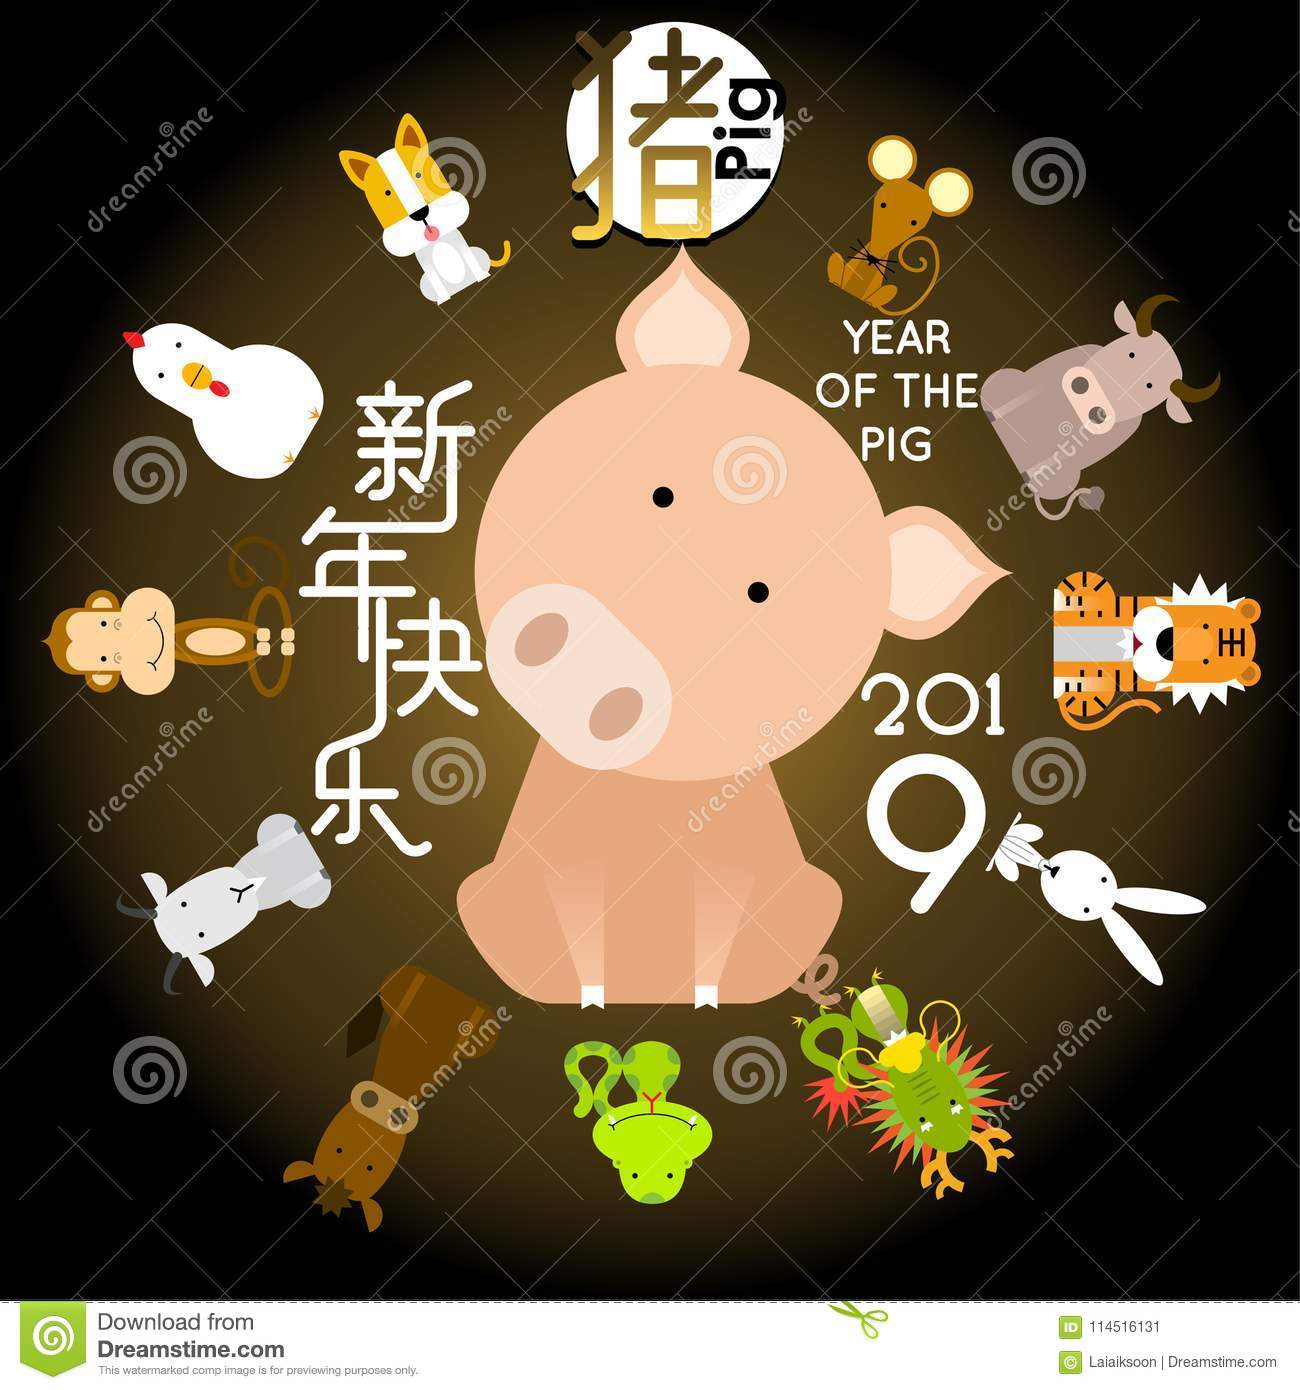 Happy Chinese New Year 2019 Year Of The Pig With 12 Chinese Zodiac Animals Stock Vector Illustration Of Decoration Goat 114516131